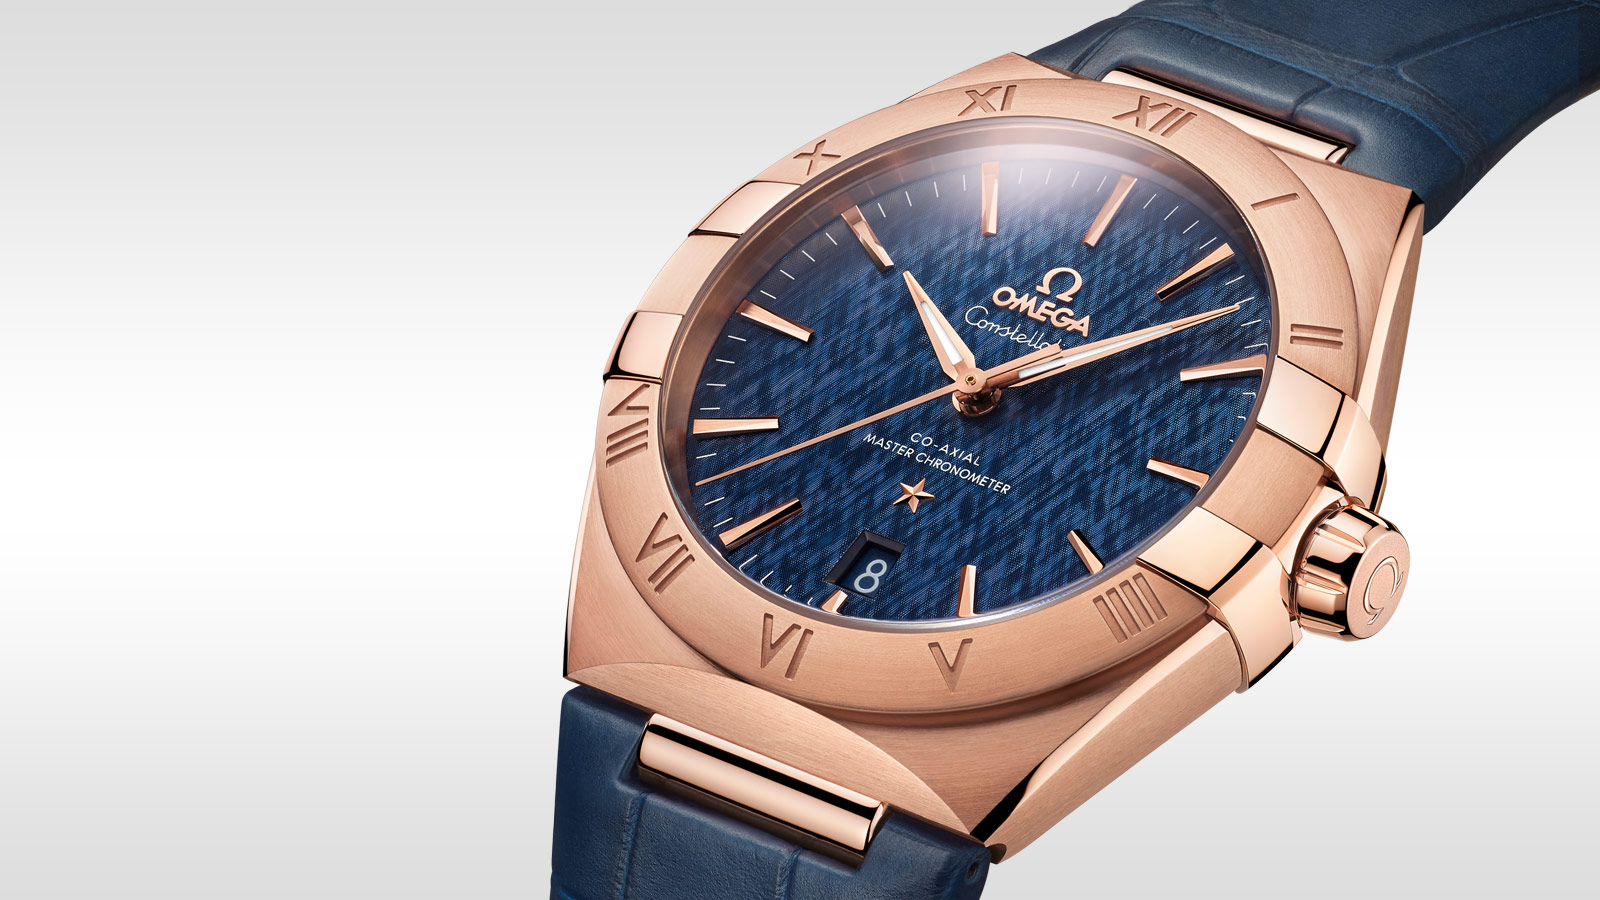 Constellation Constellation Constellation OMEGA Co‑Axial Master Chronometer 39 mm - 131.53.39.20.03.001 - Visualizzare 3